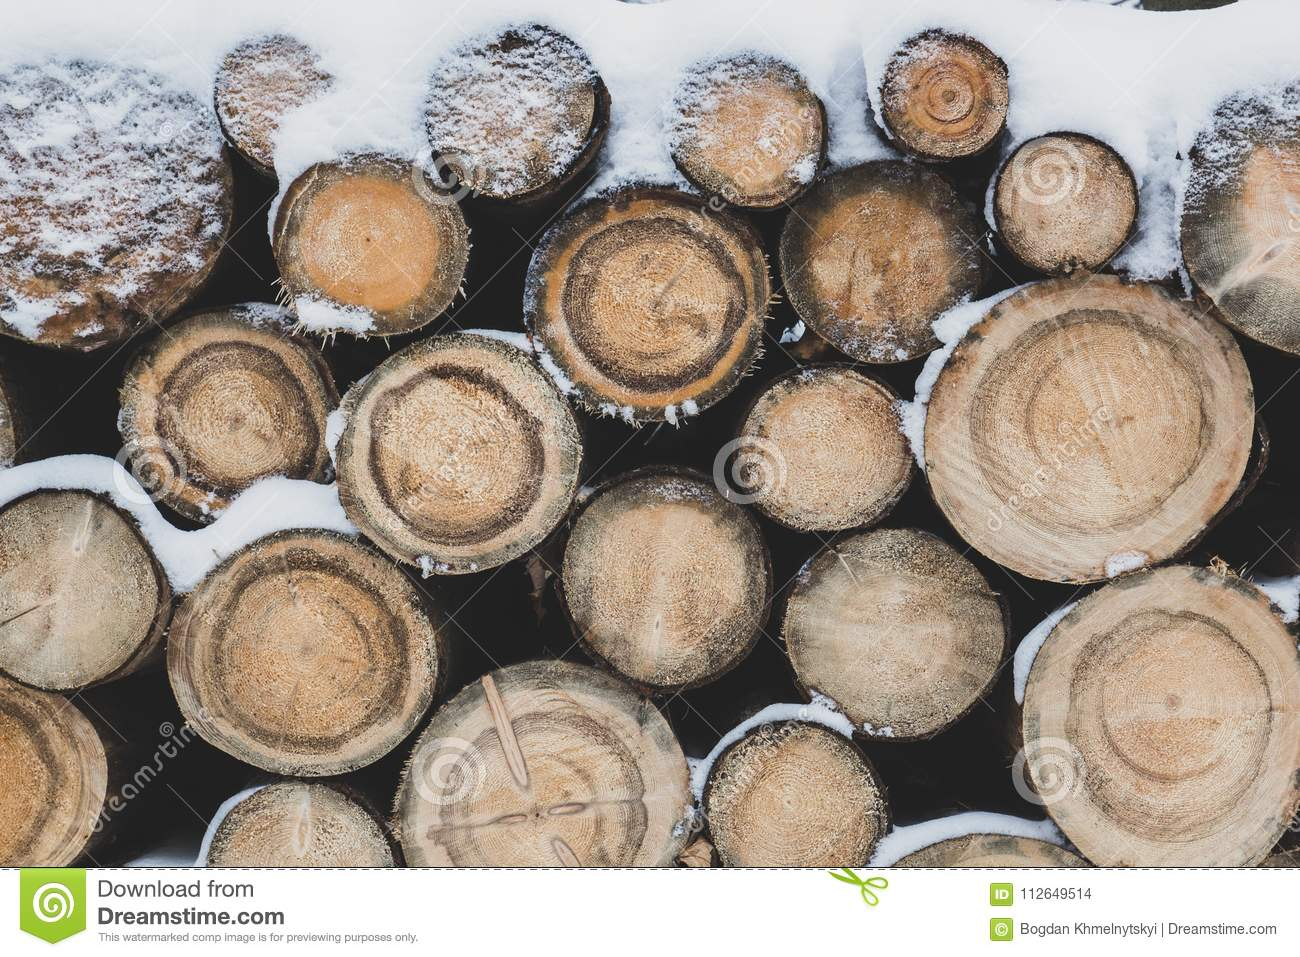 The logs are dusted with snow